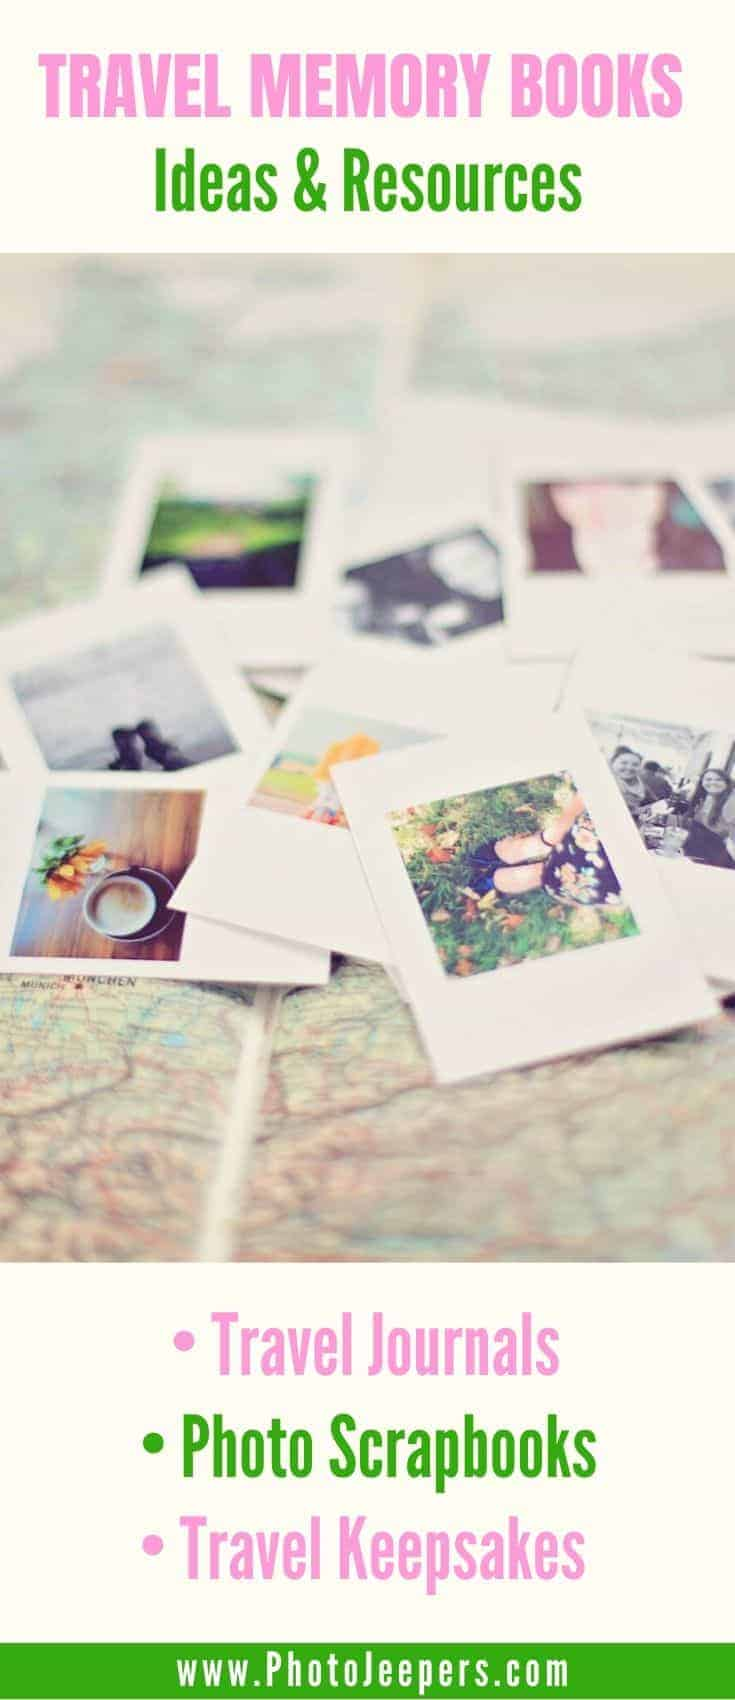 Travel memory book ideas and resources: travel journals, scrapbooks, postcards, travel posters, travel keepsakes and more! #travel #traveljournal #scrapbook #travelmemories #photojeepers